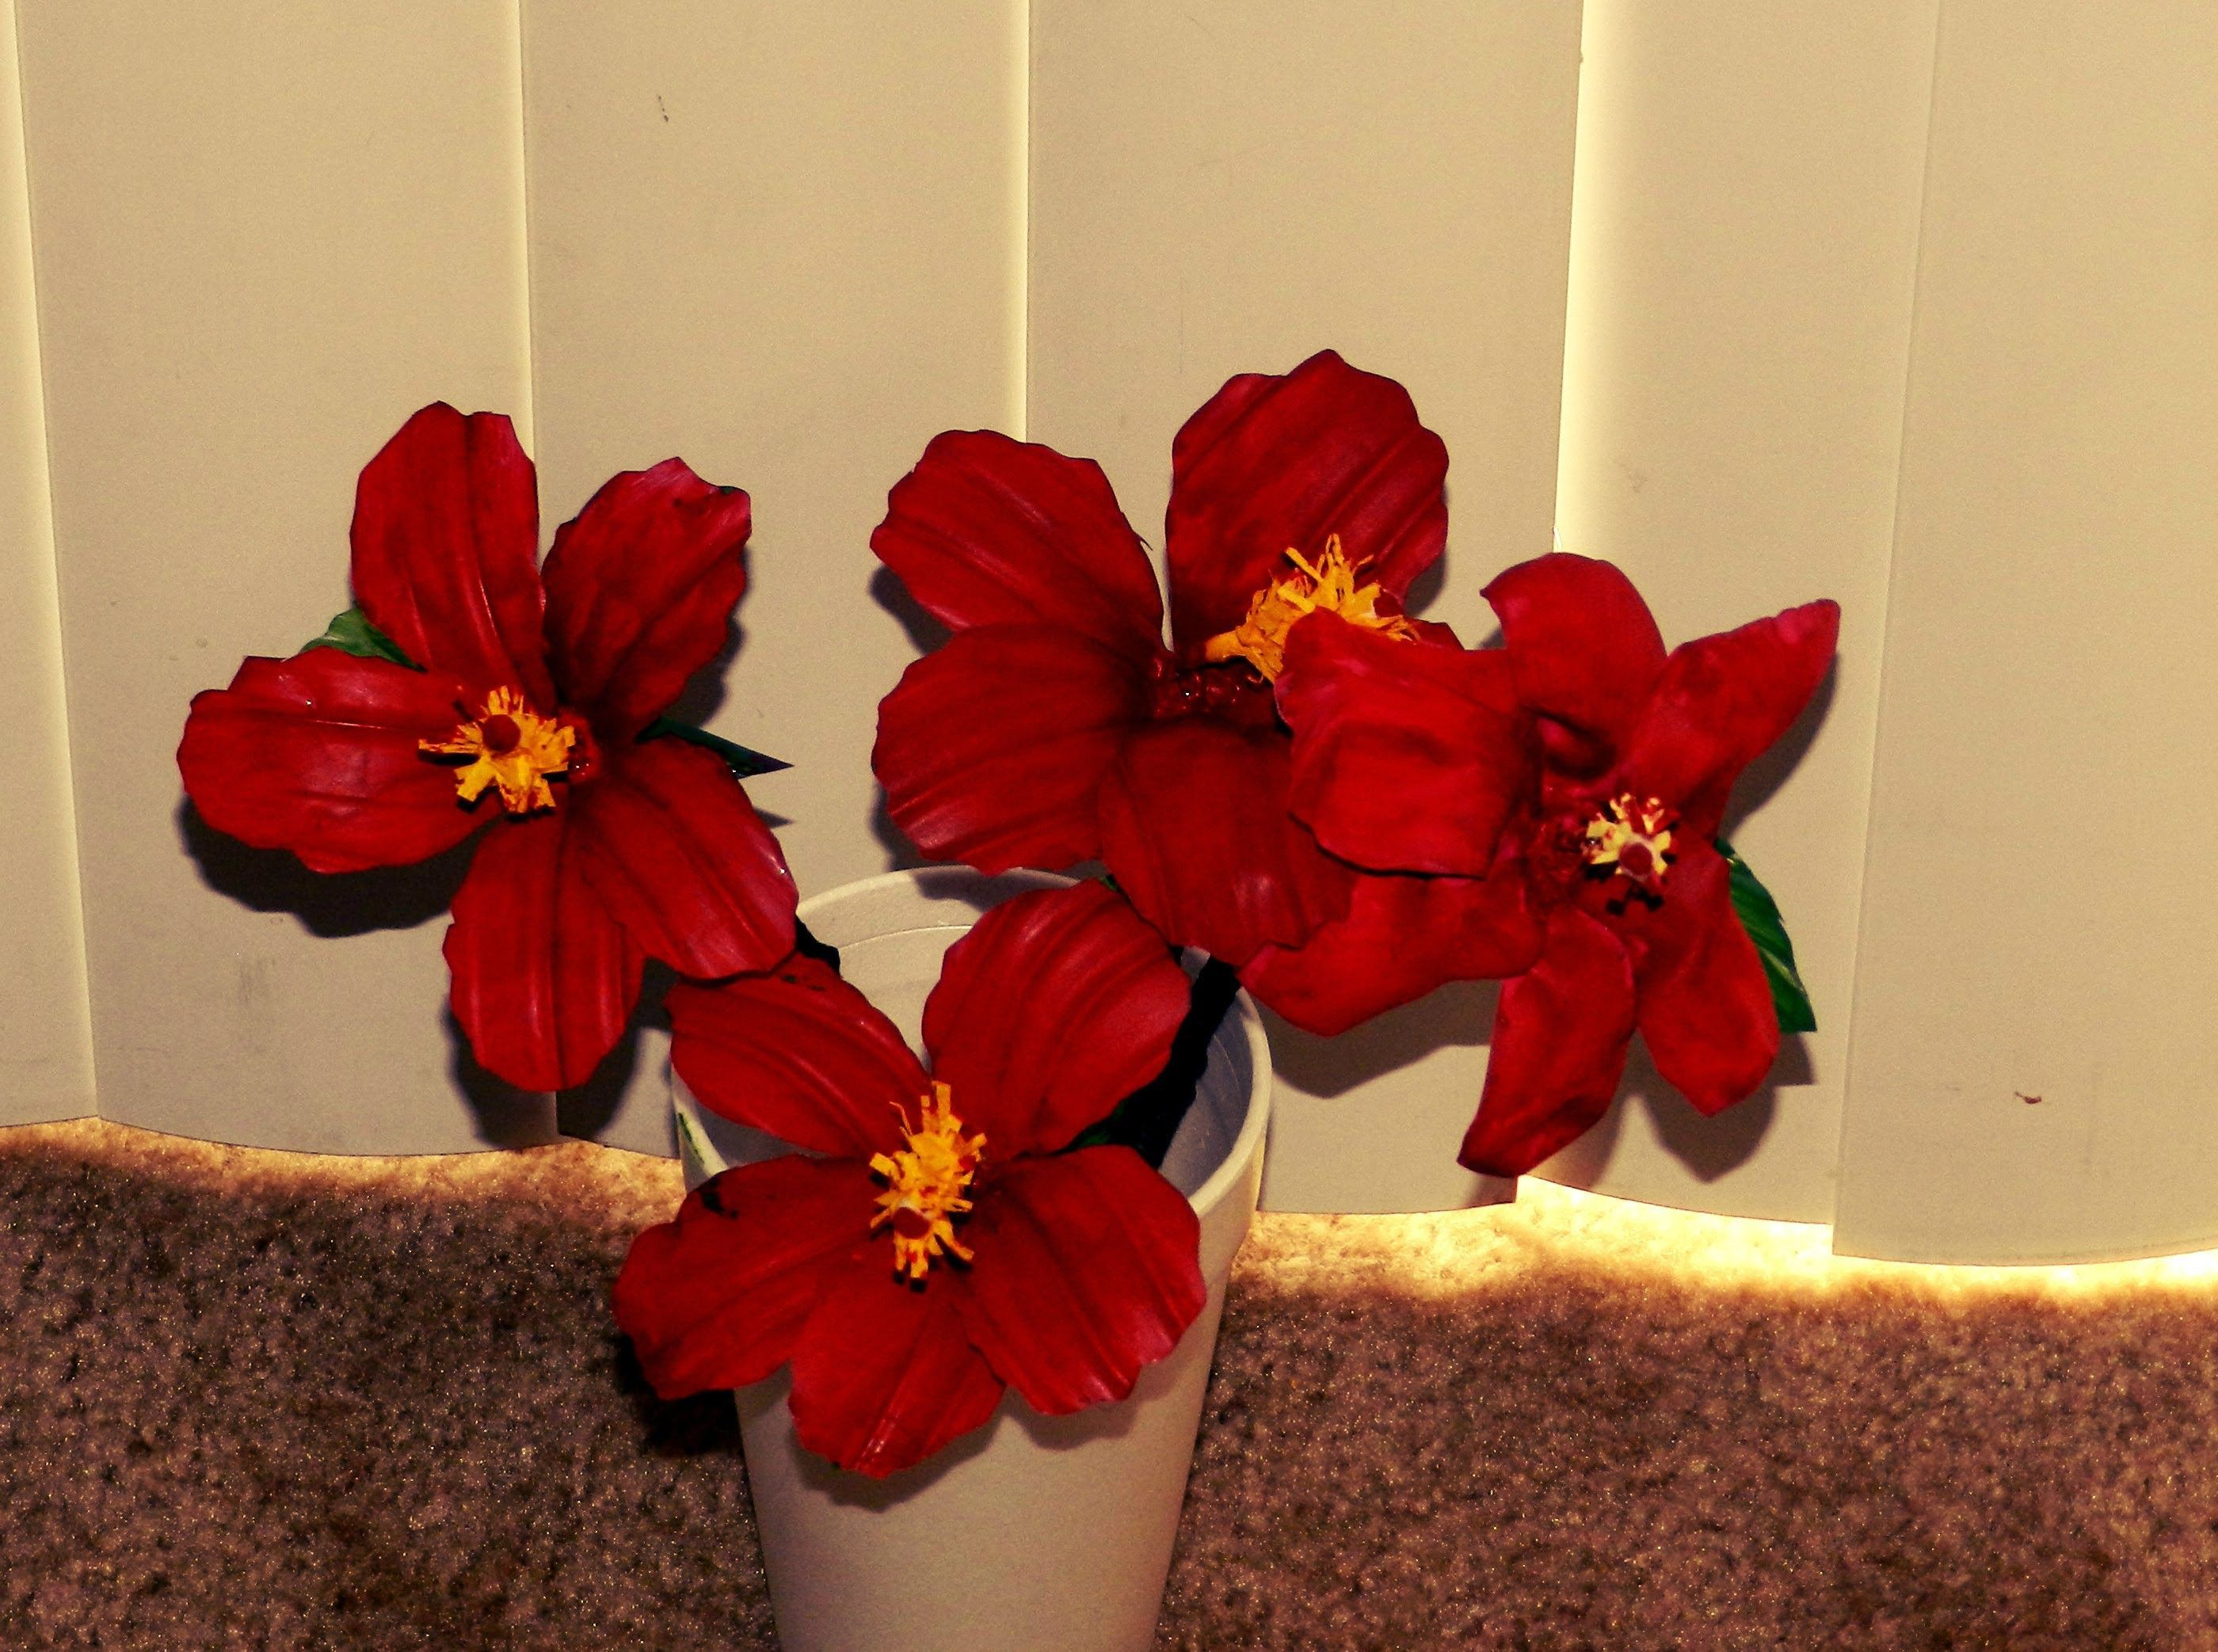 Recycled Diy Hibiscus Flowers Made With Waste Plastic Water Bottles